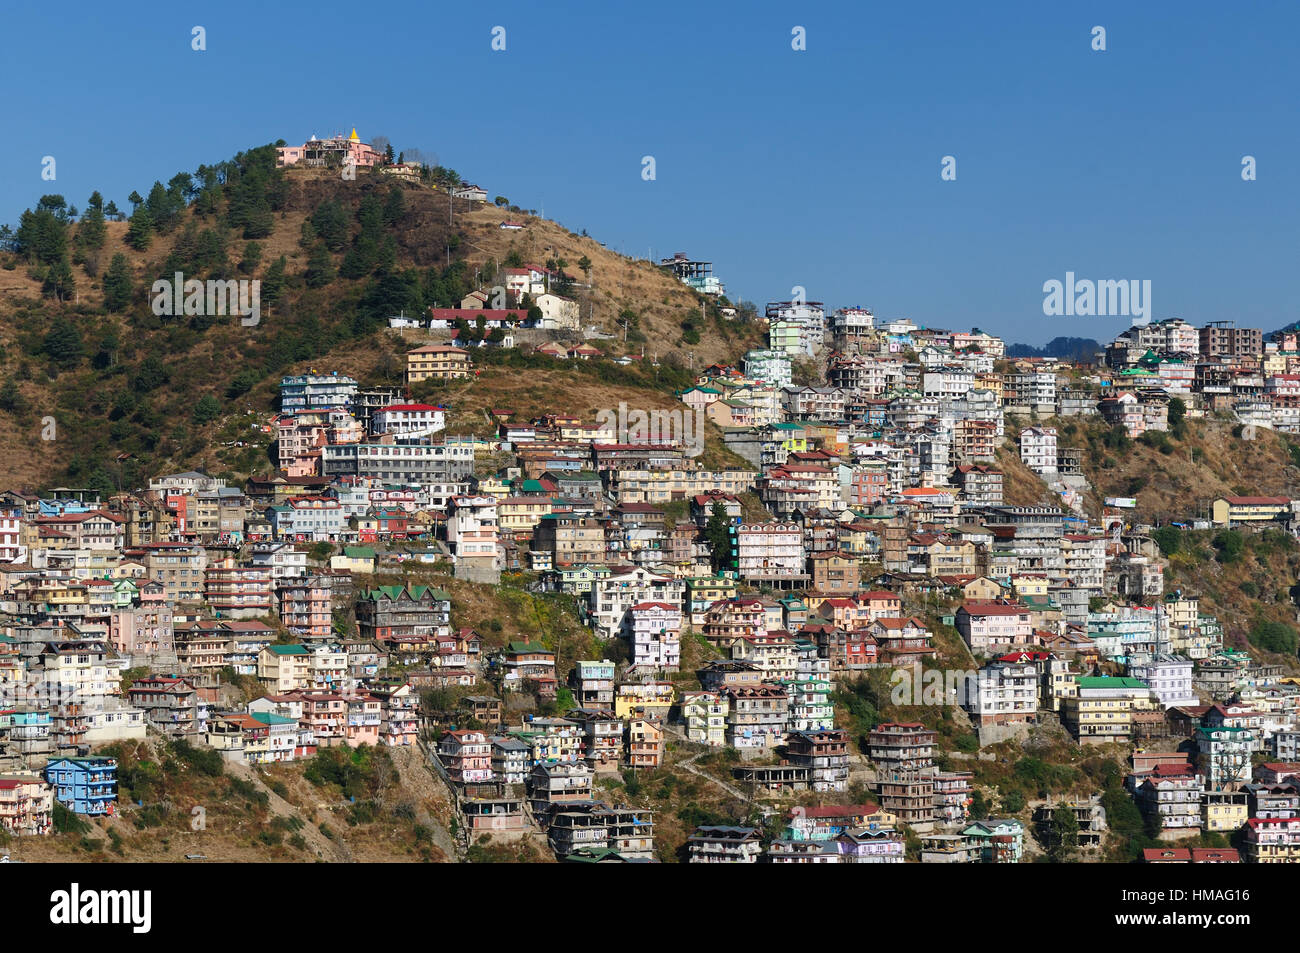 View on the Indian city in Himalaya mountains near Shimla - Stock Image